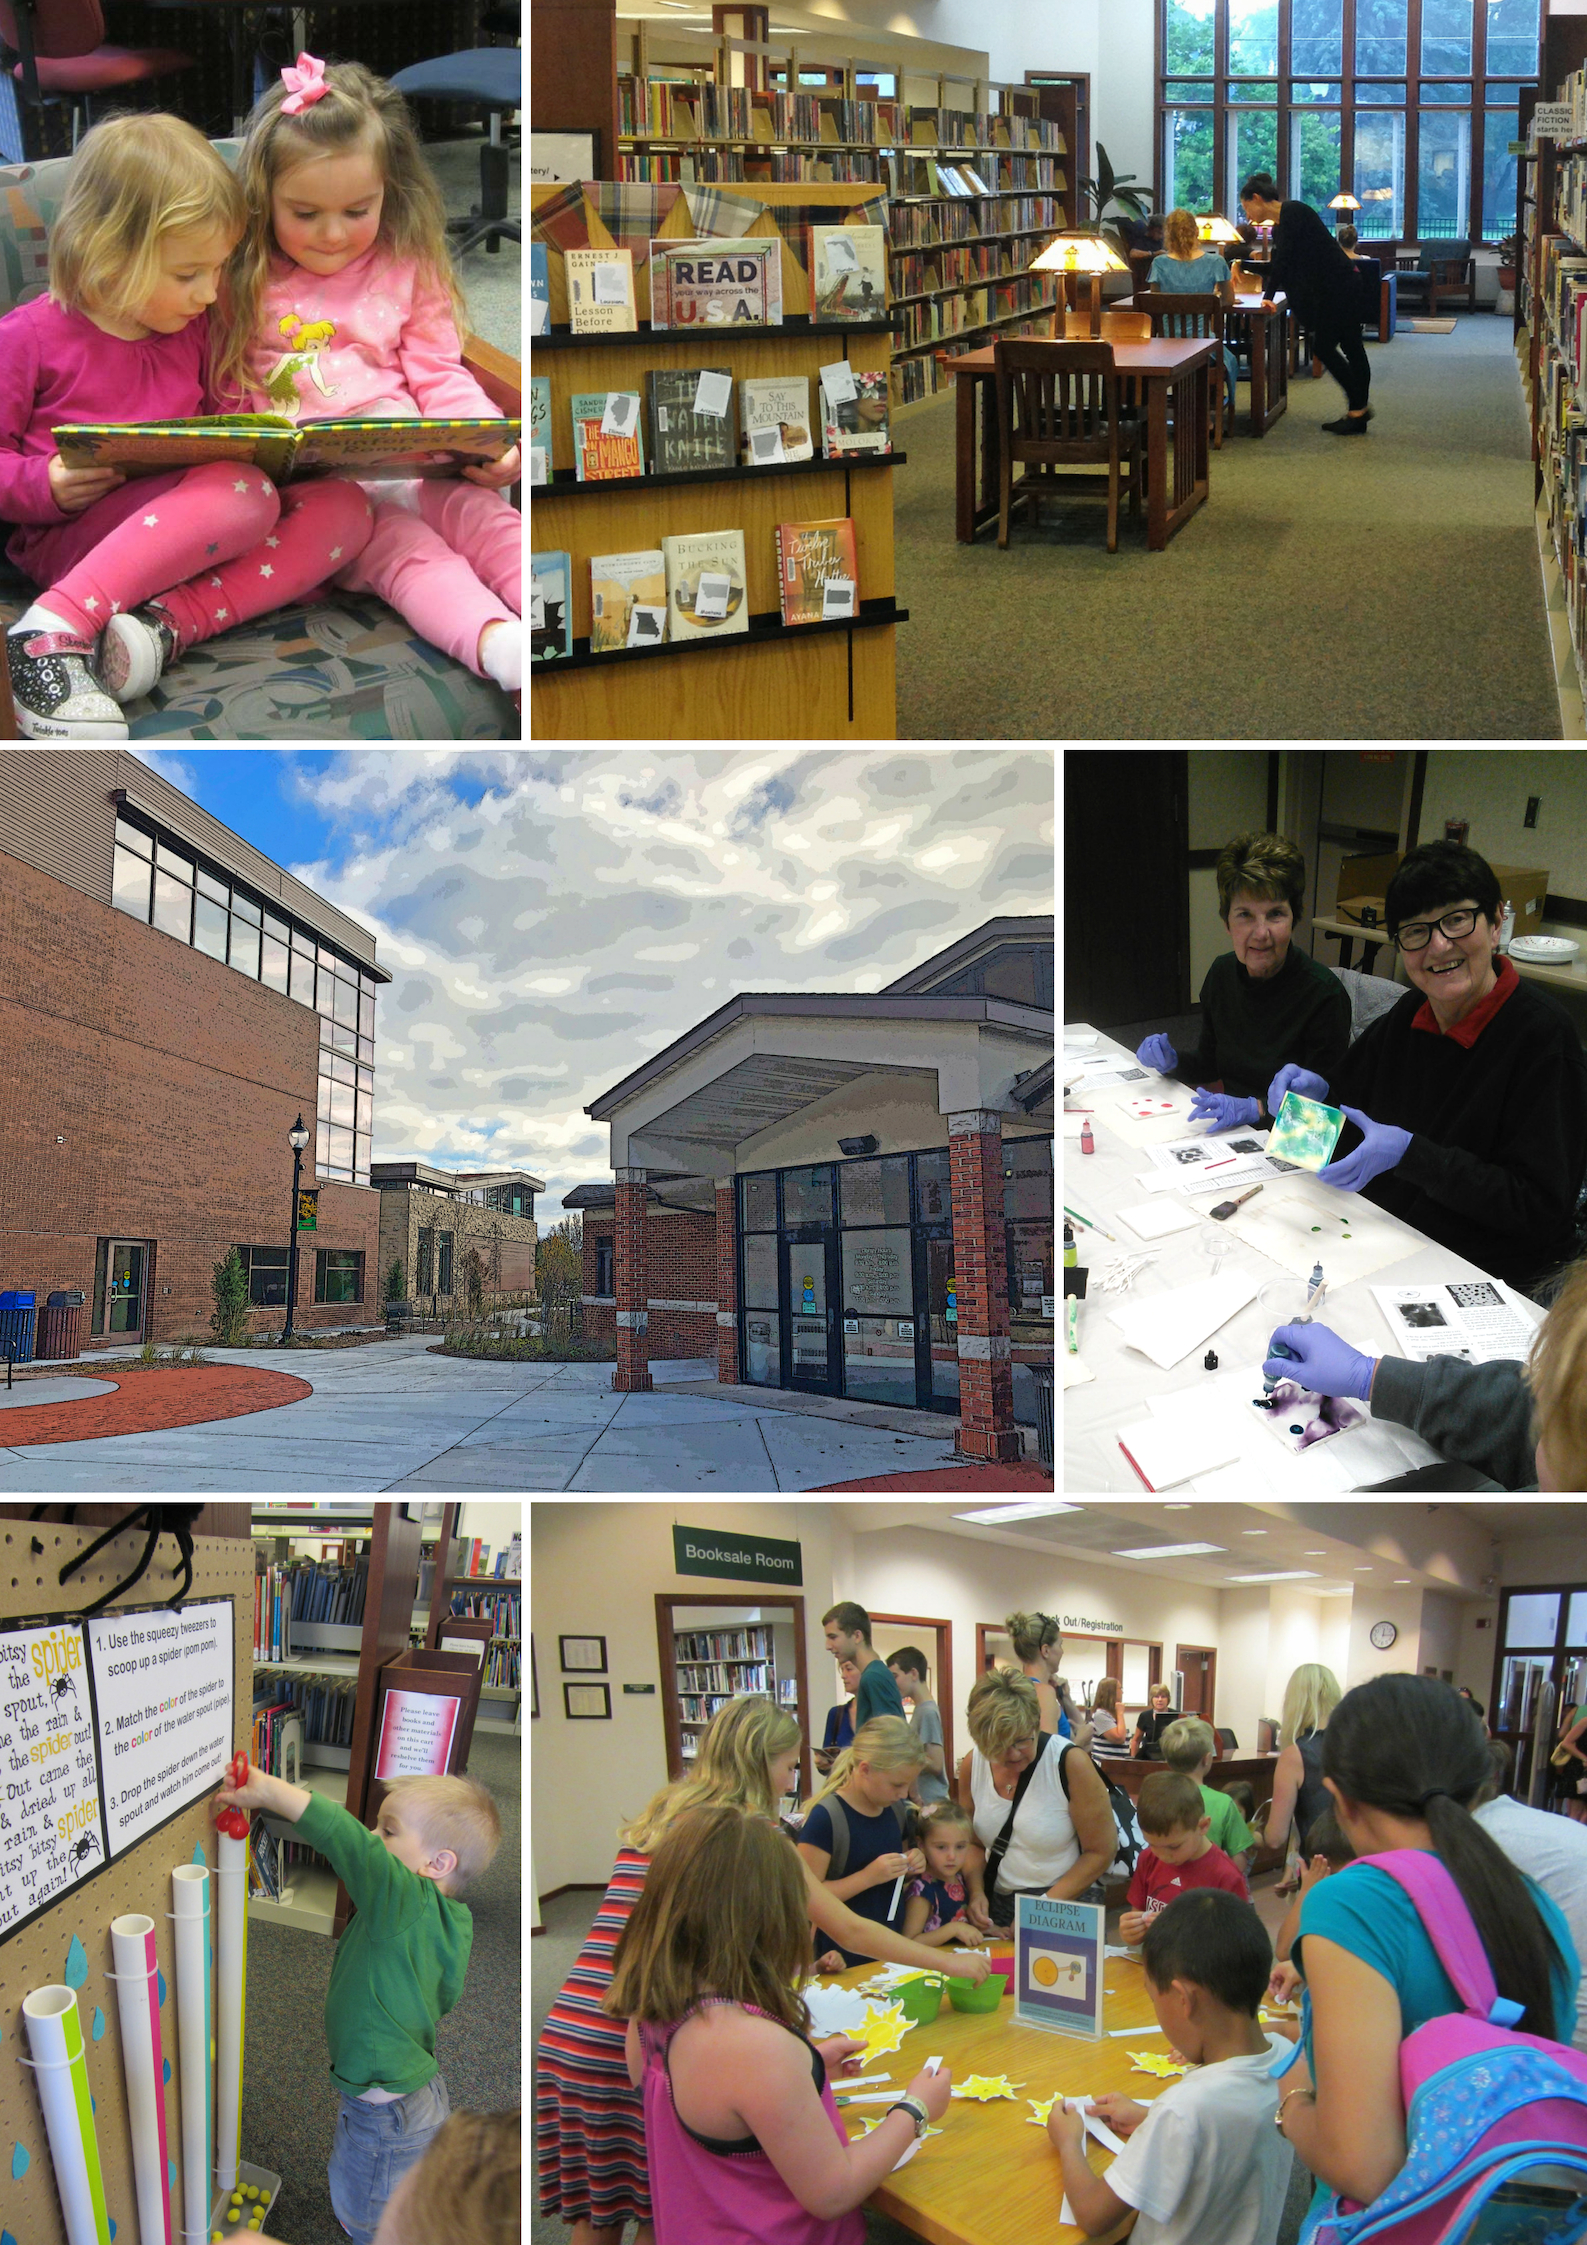 Library users engaged in activities around the building.